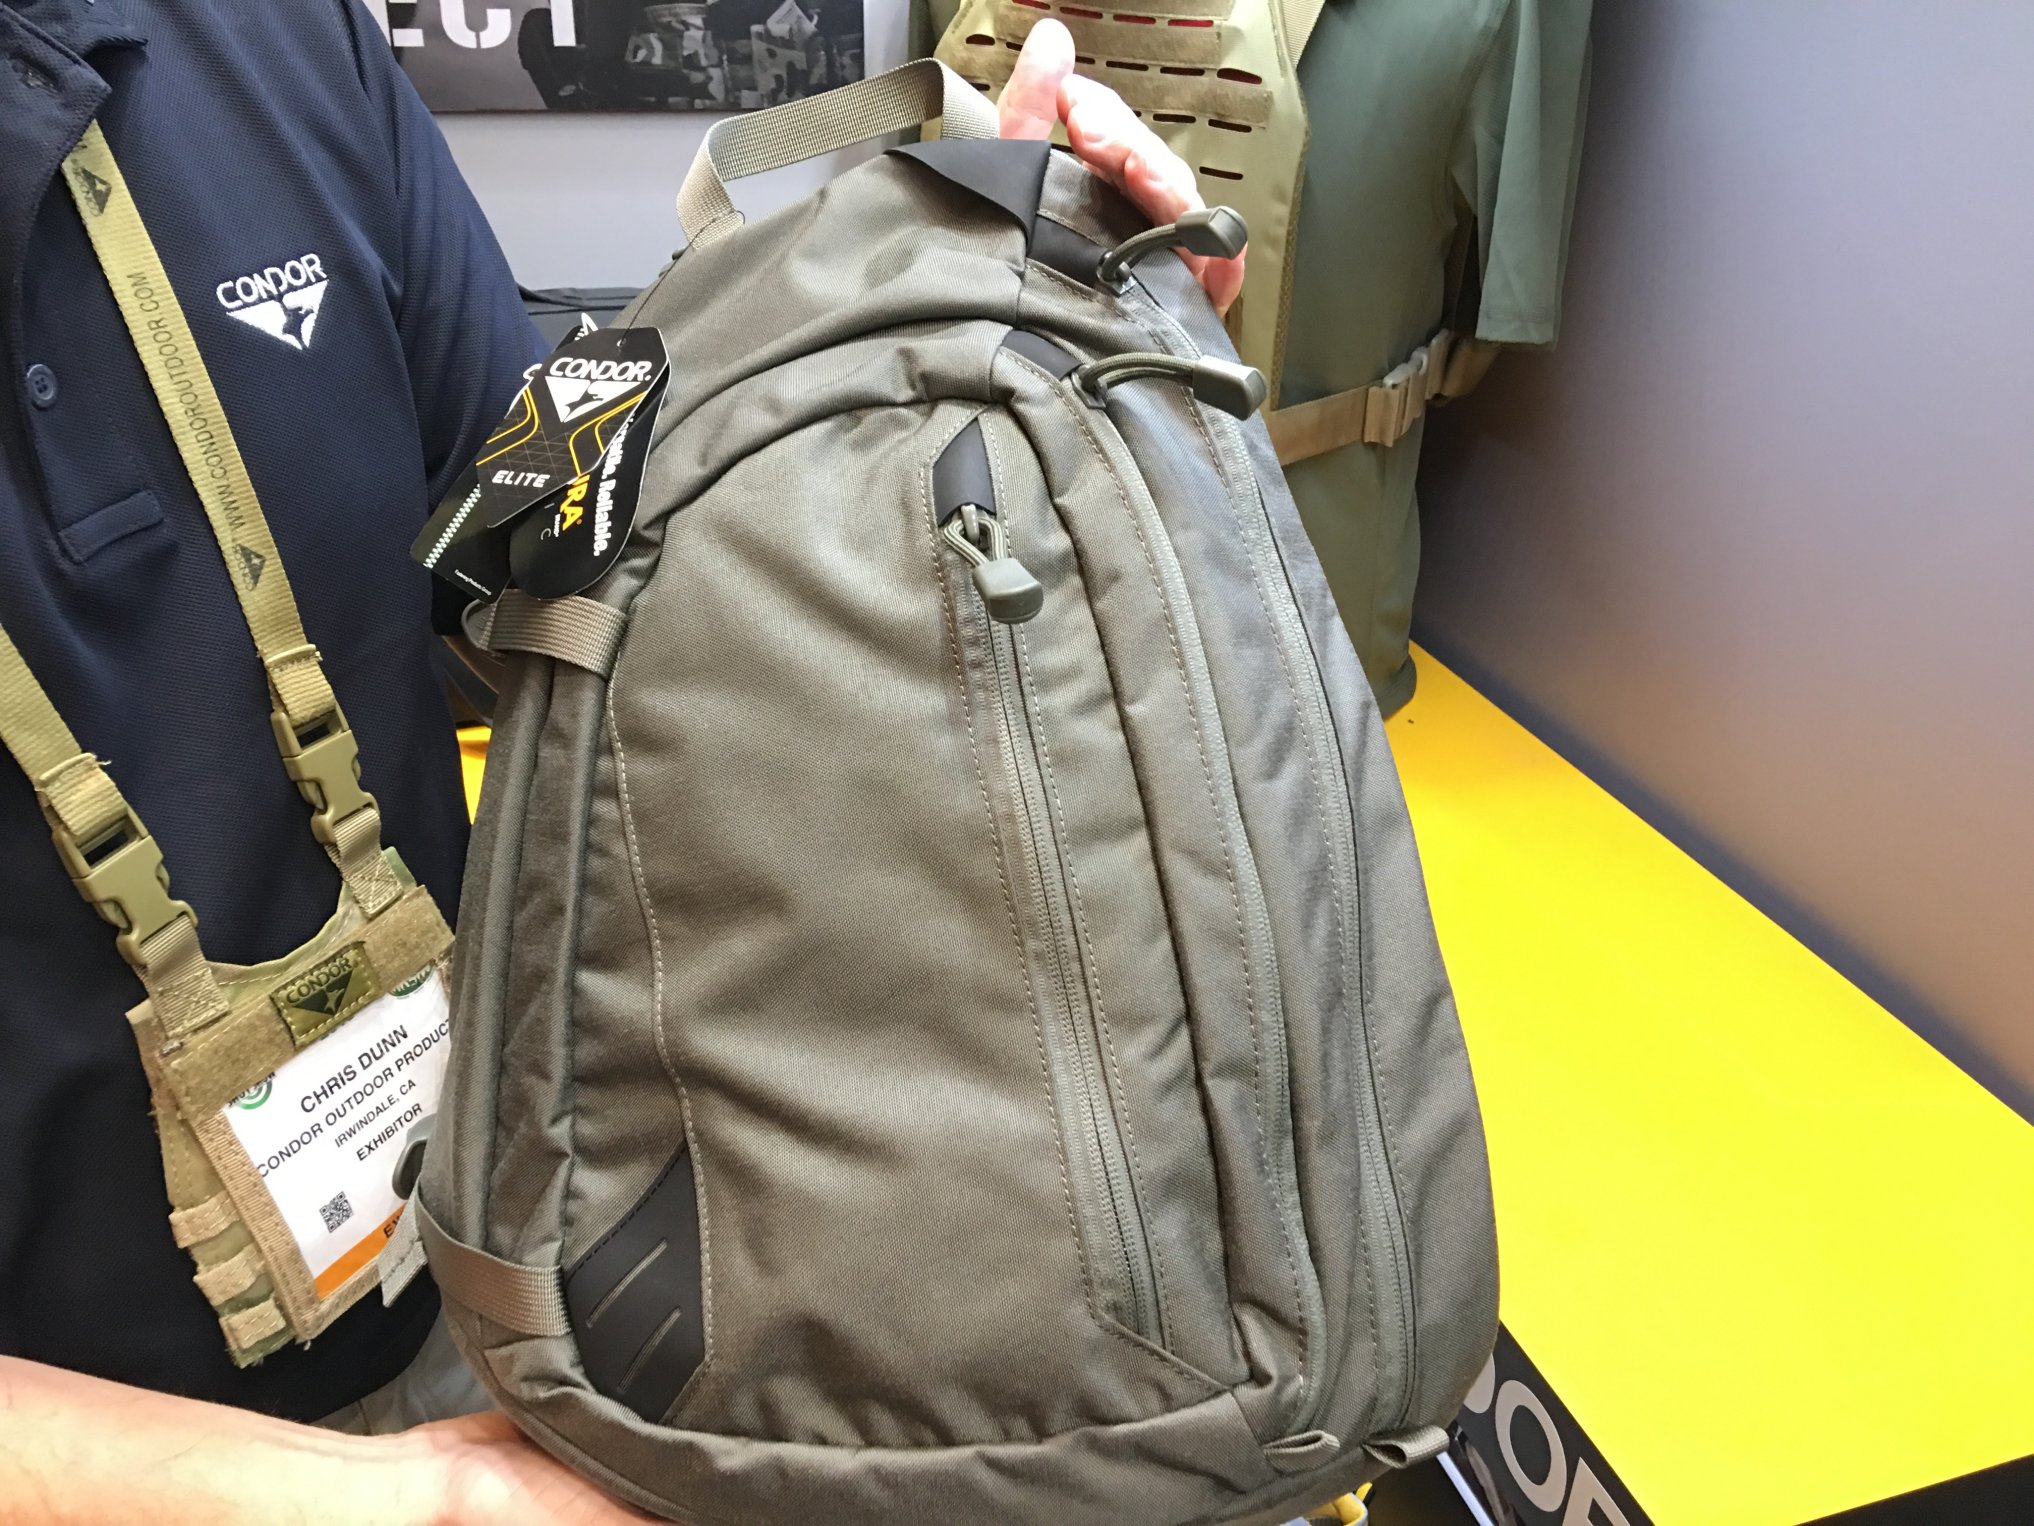 Bag covert urban combat tactical pack tactical armor plate carrier